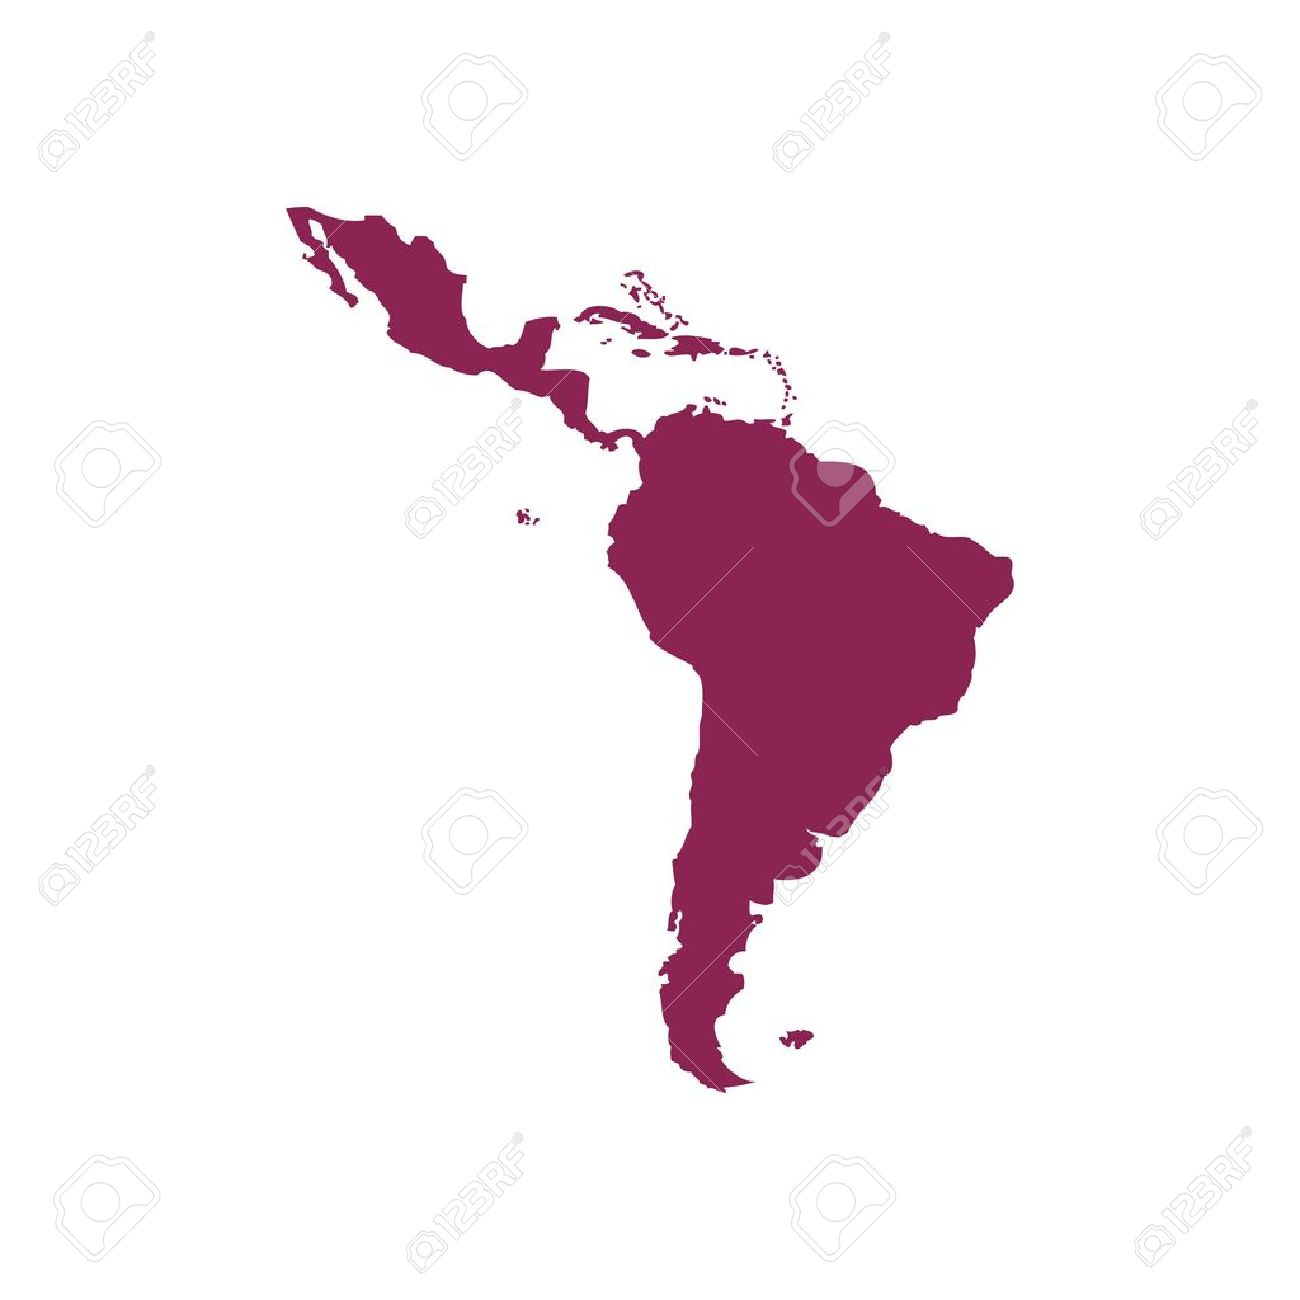 Purple America Map.Purple Latin America Map Silhouette Vector Illustration Isolated